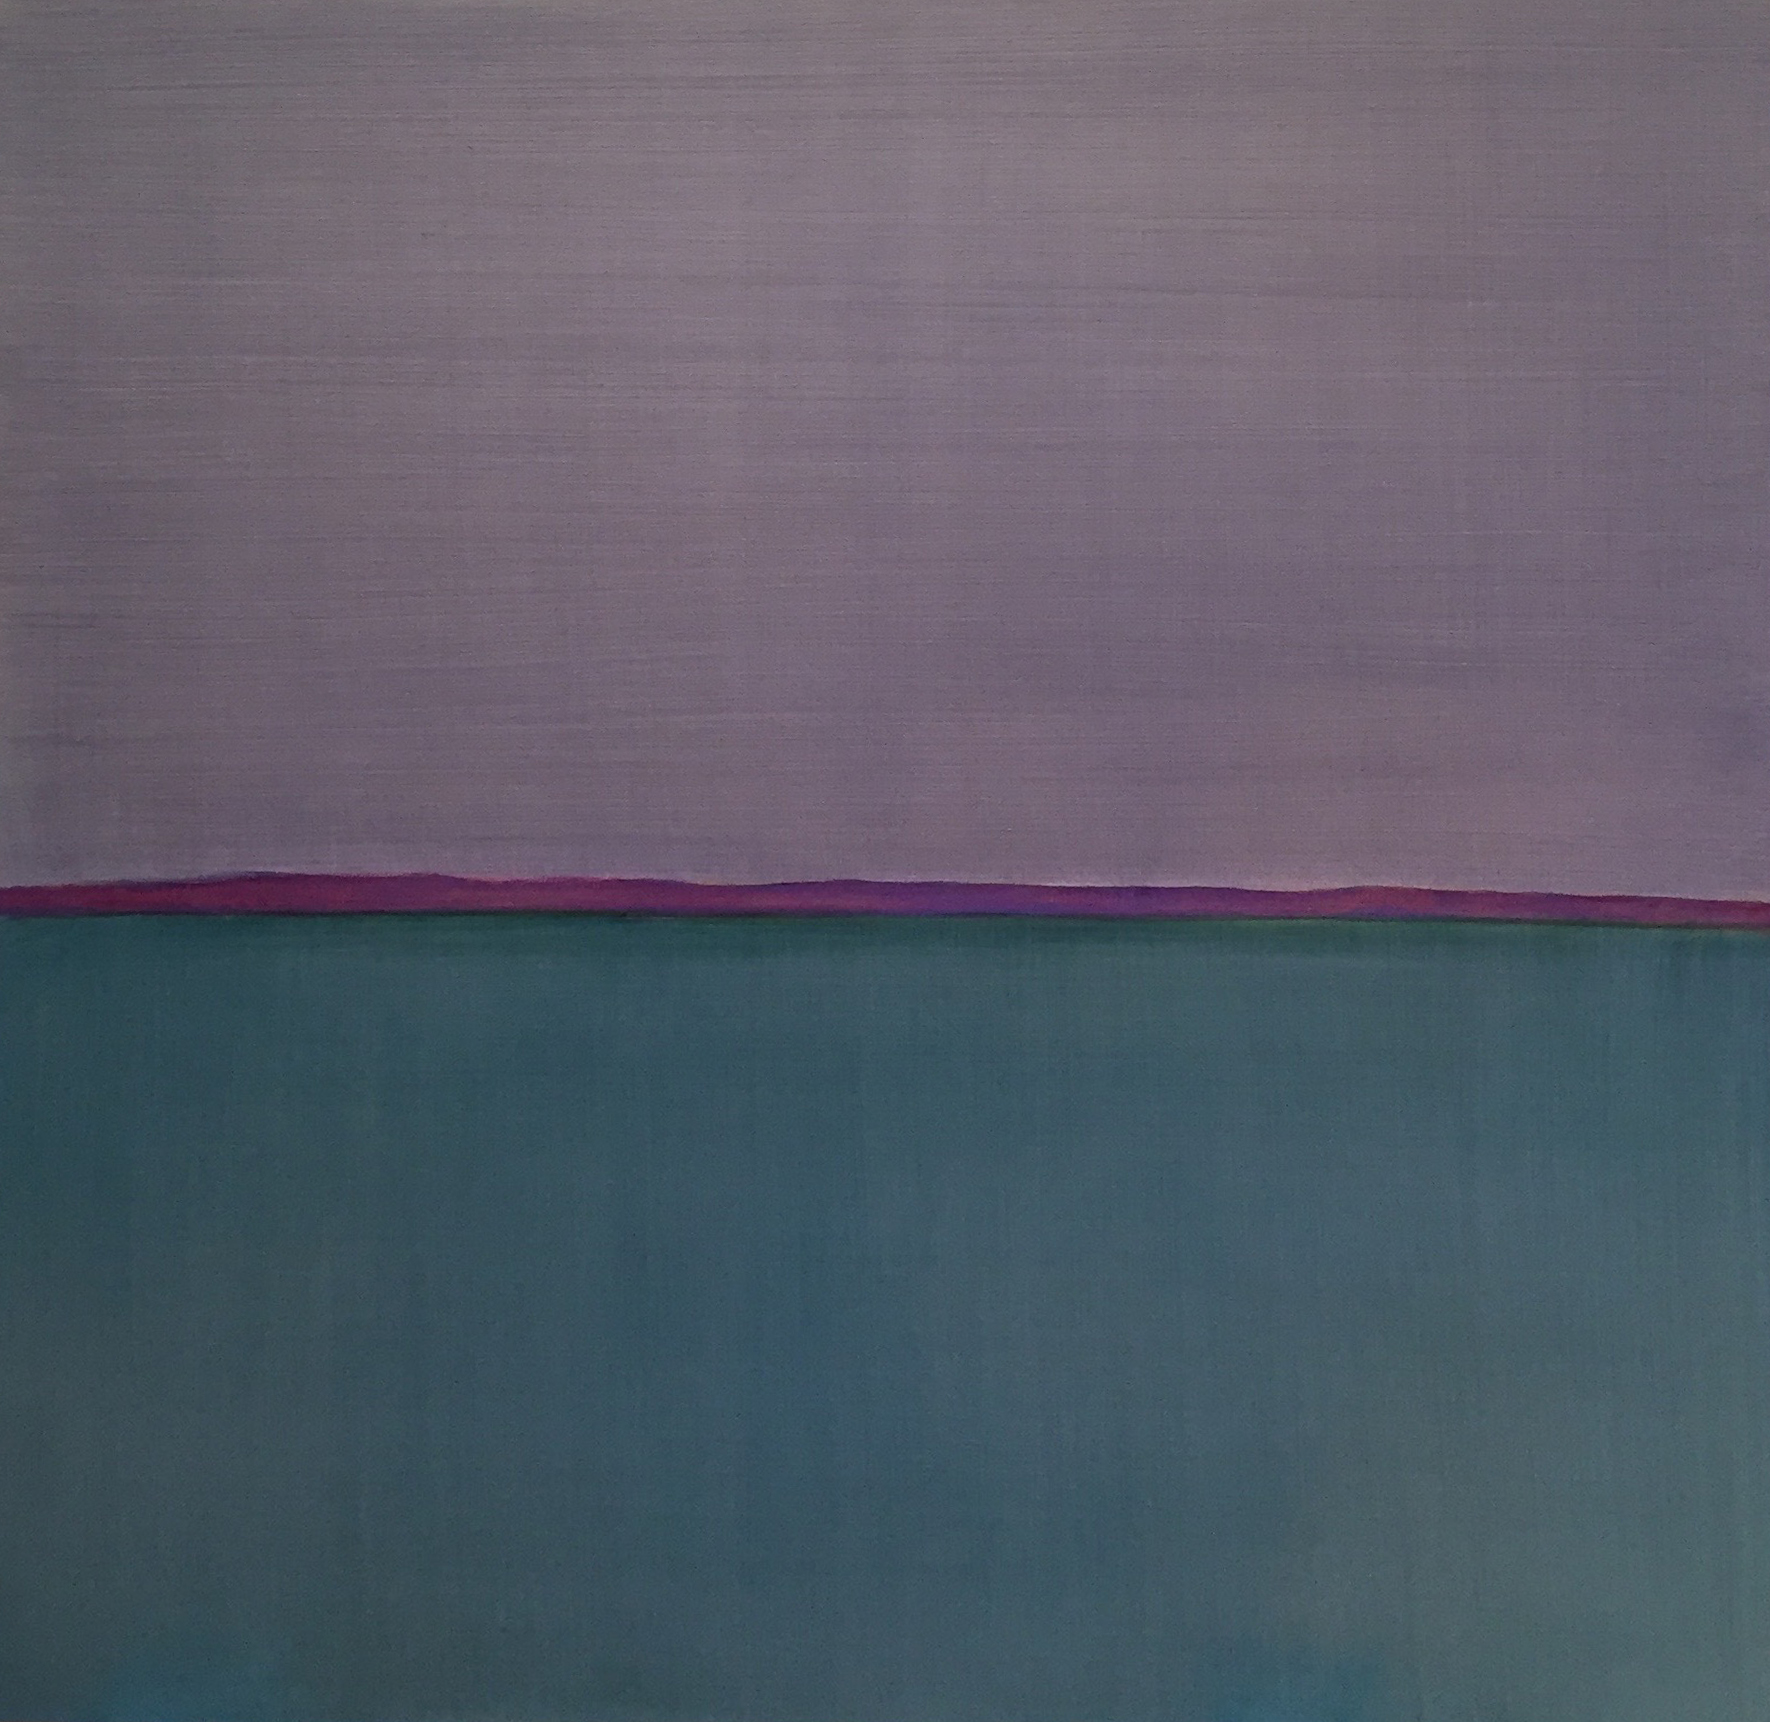 Blue Field July 10th 2016 Oil on canvas 42 x 38 inches #4097